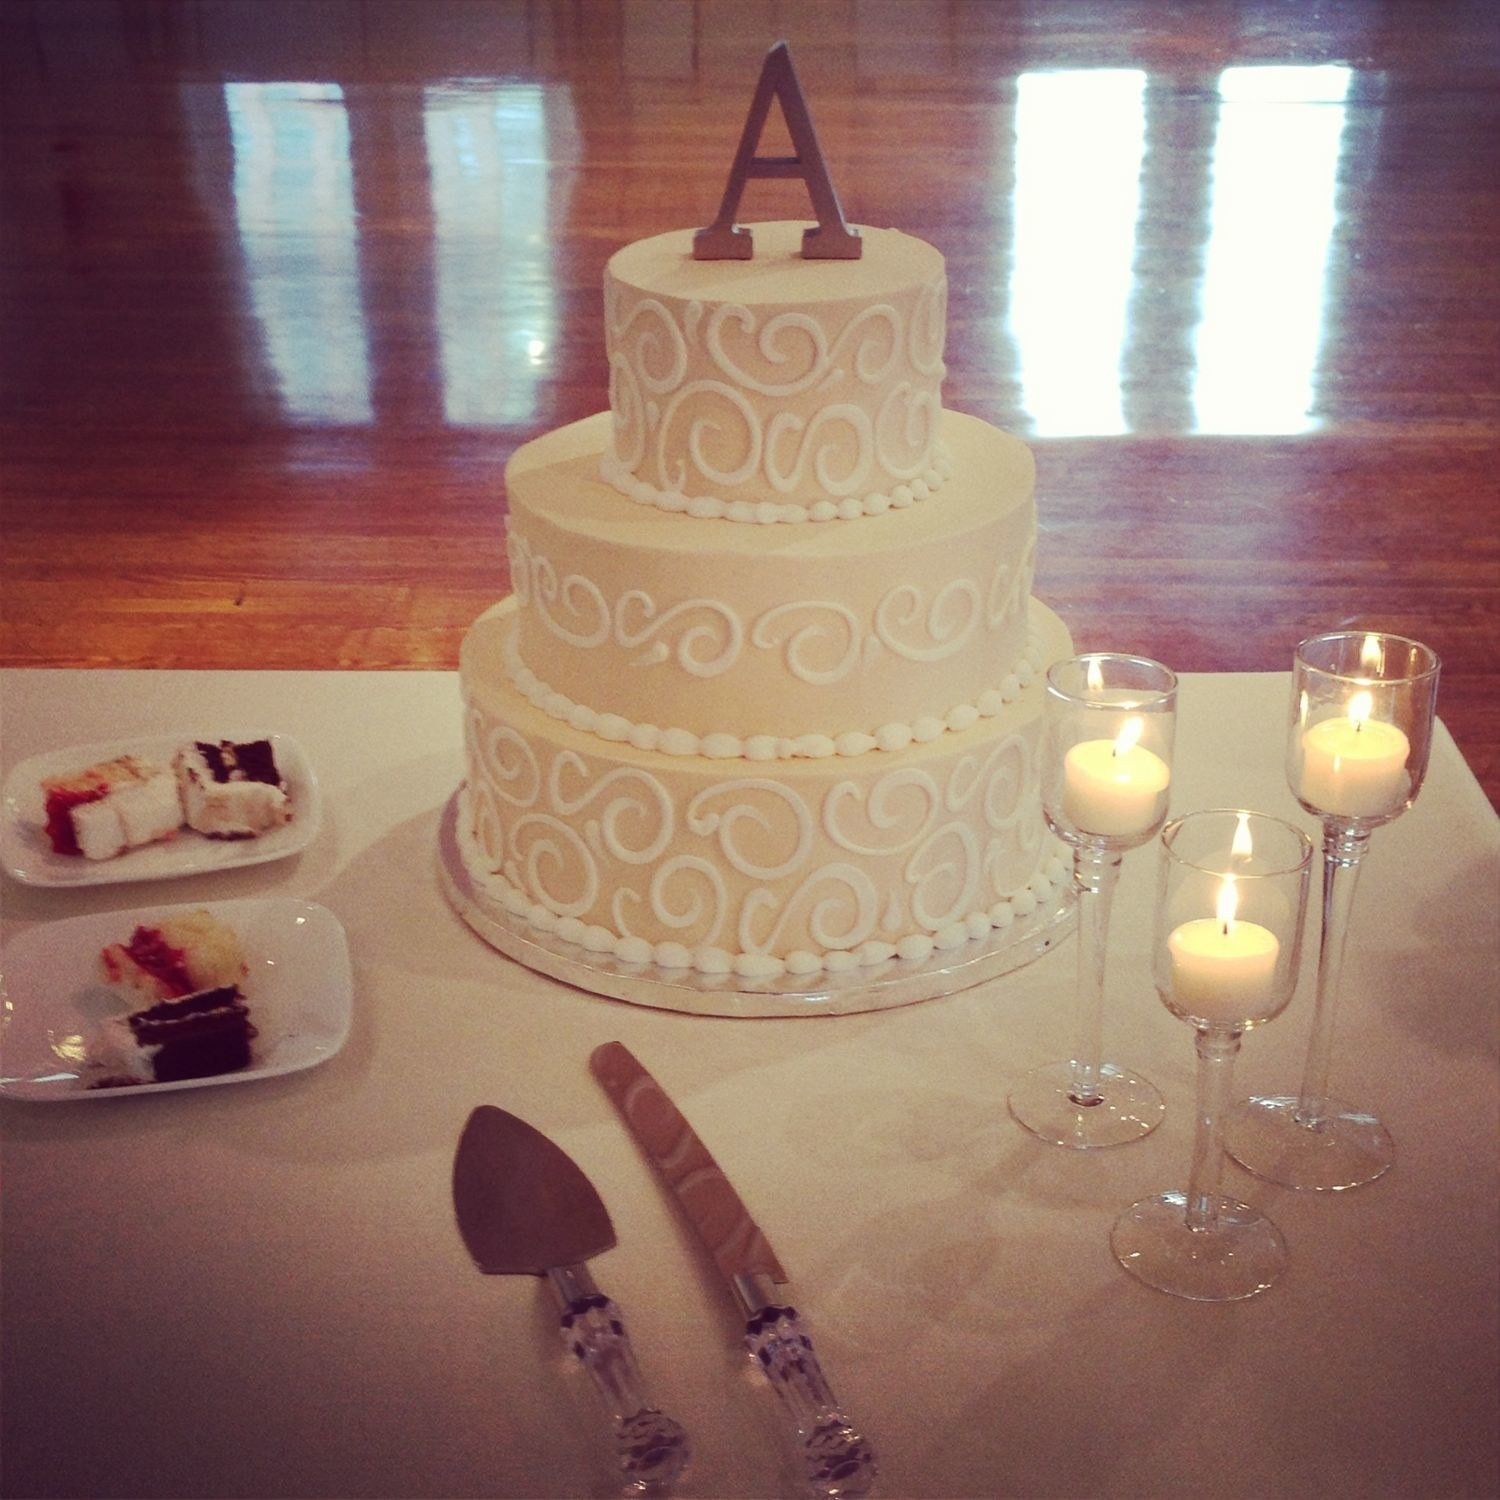 Walmart Wedding Cakes Cost  News Flash Walmart Makes Wedding Cakes And They re GOOD